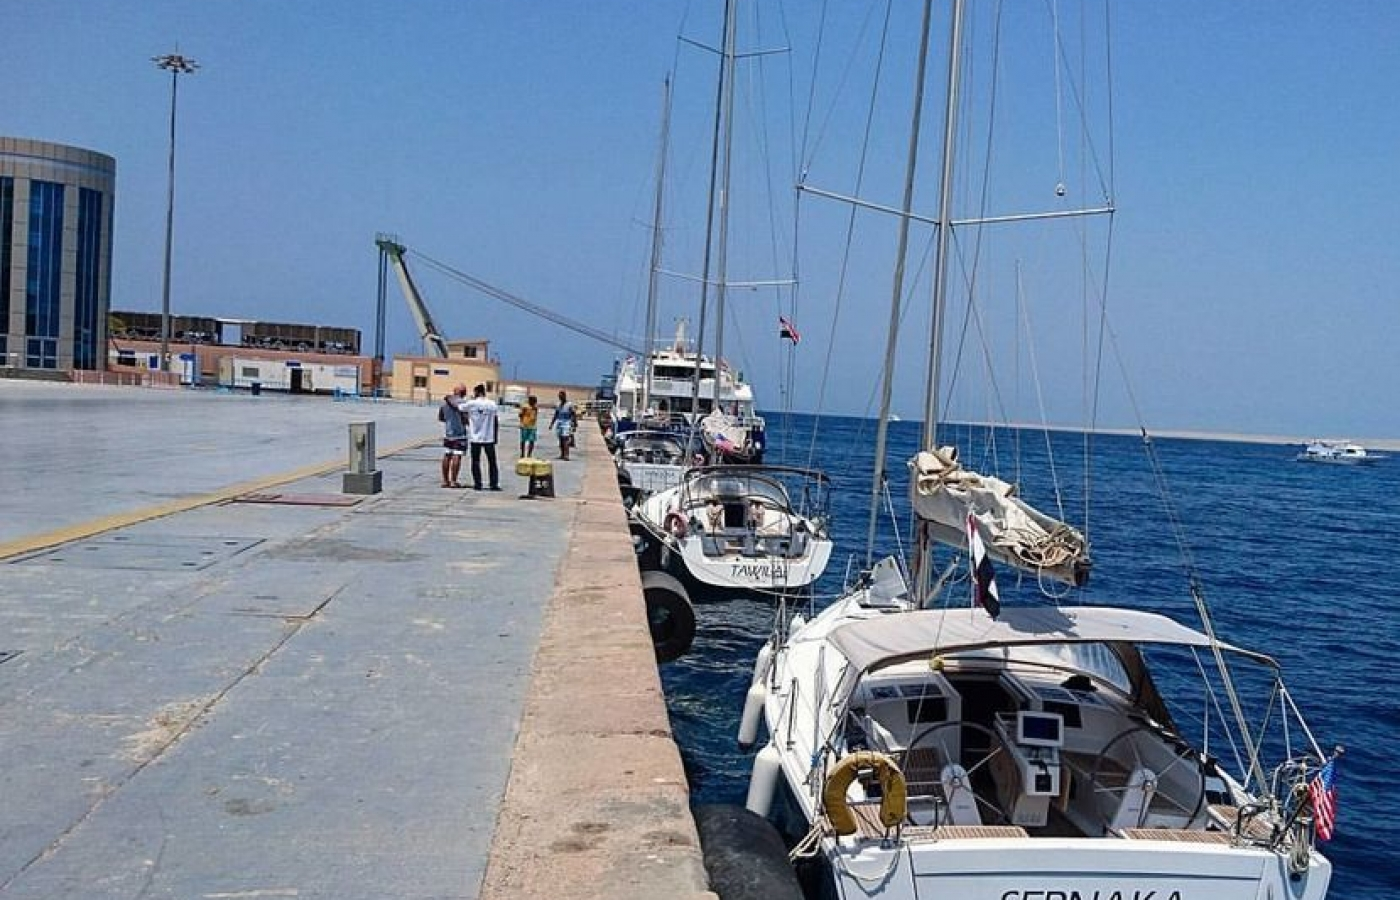 Hanse 385 - Sernaka docked in Egypt